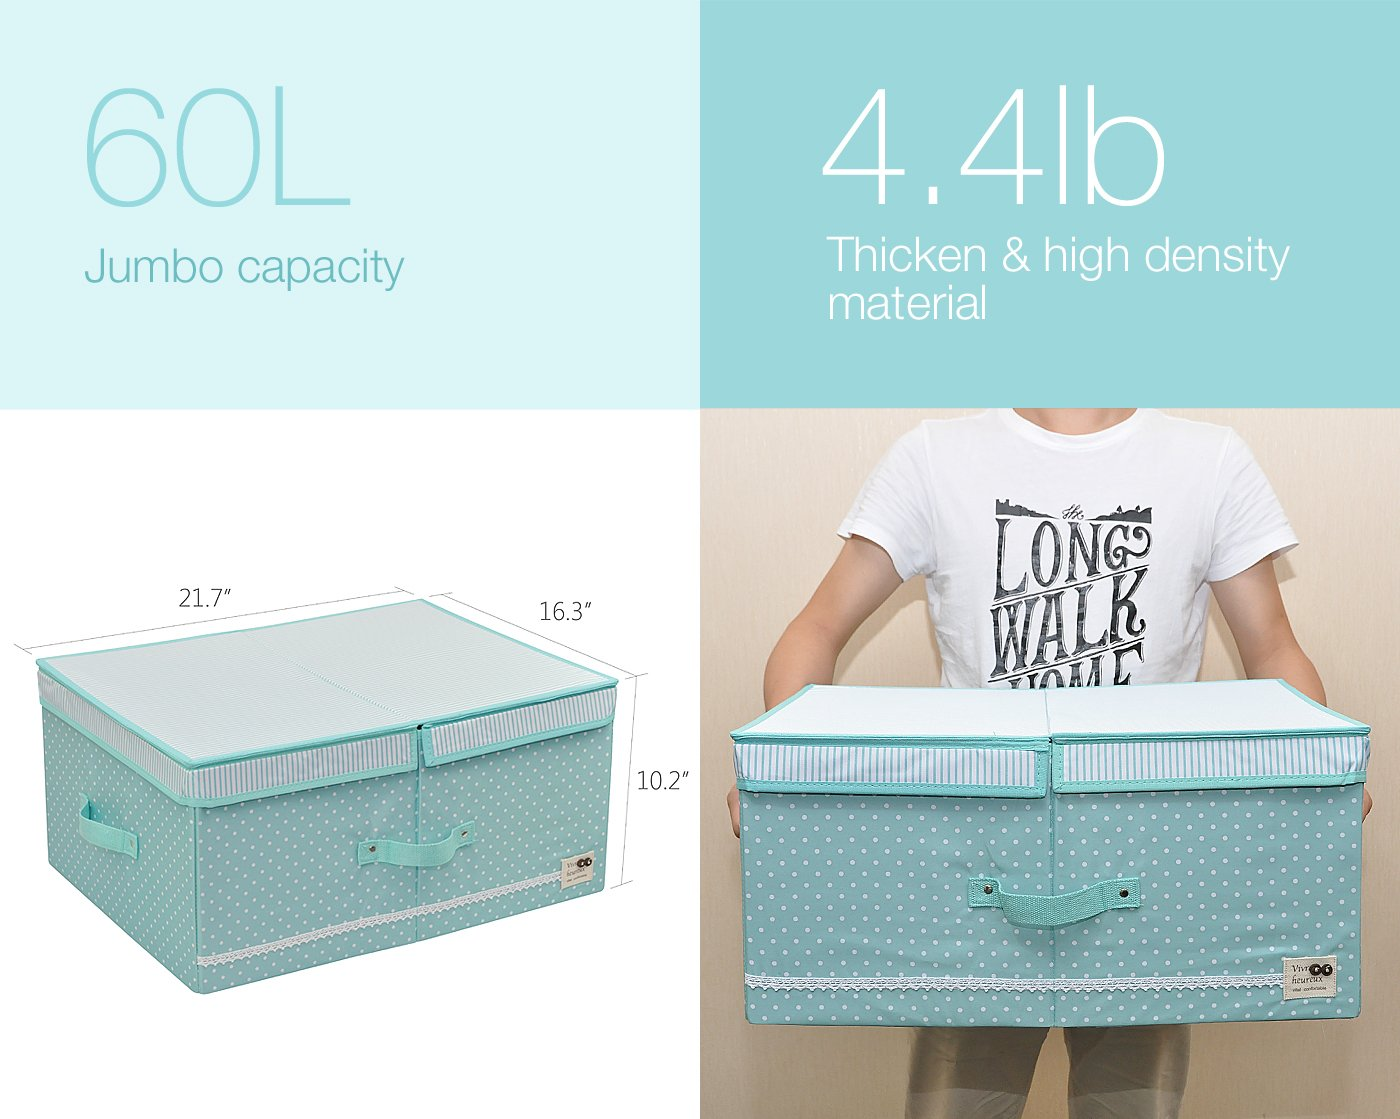 Handles and Cover for Under Bed Storage 60l Mint Green Collapsible Clothes Organizer Basket Bins with Over-sized Space Removable Dividers